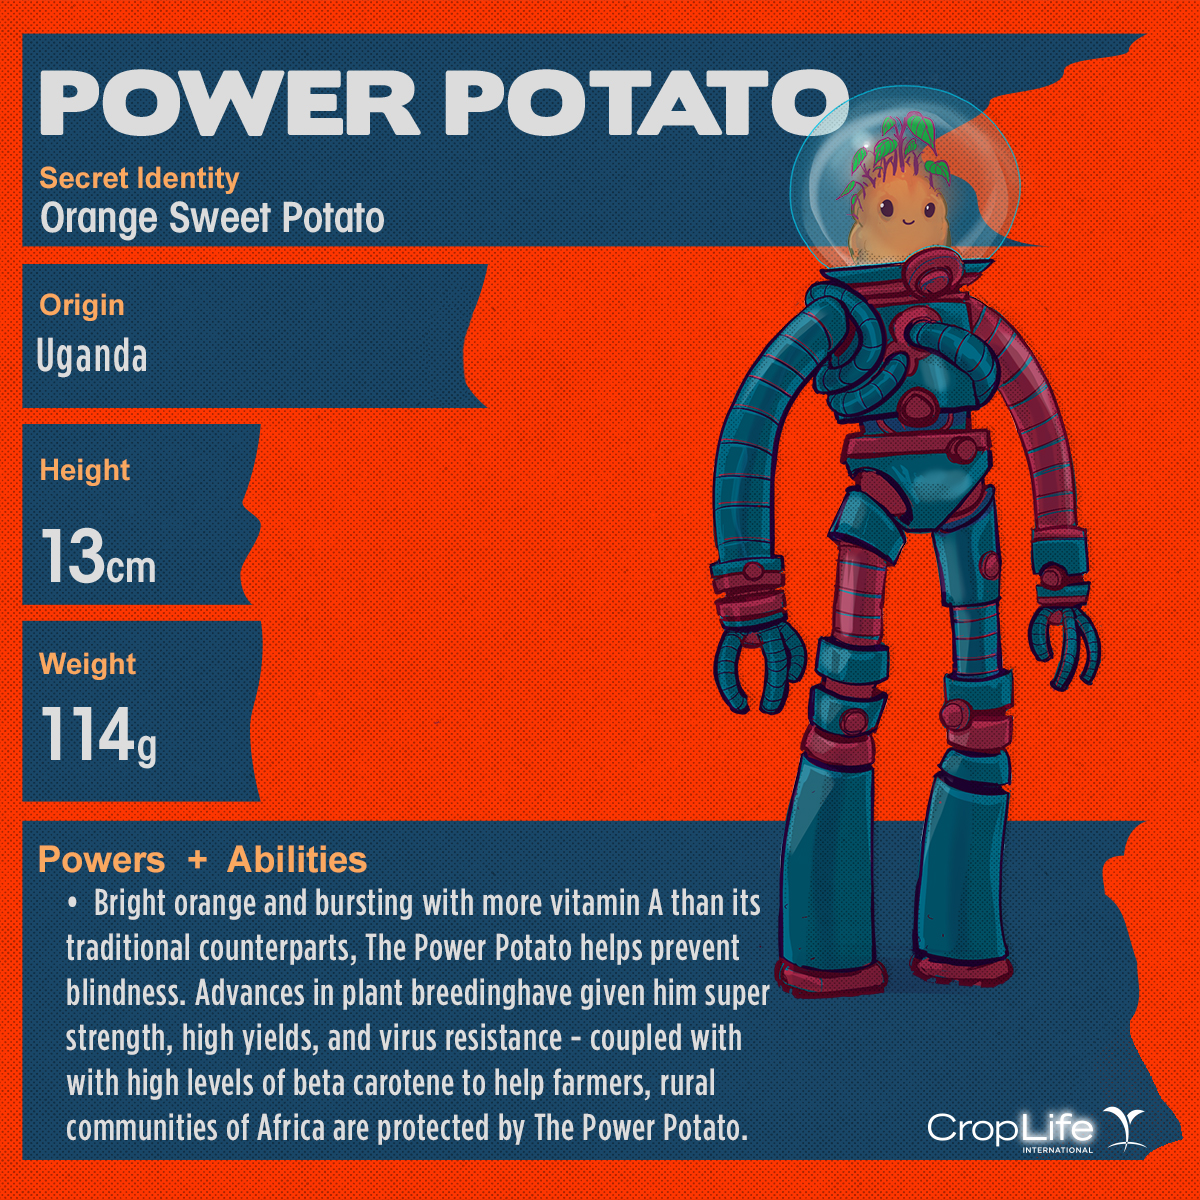 Super Power Stats | CropLife International